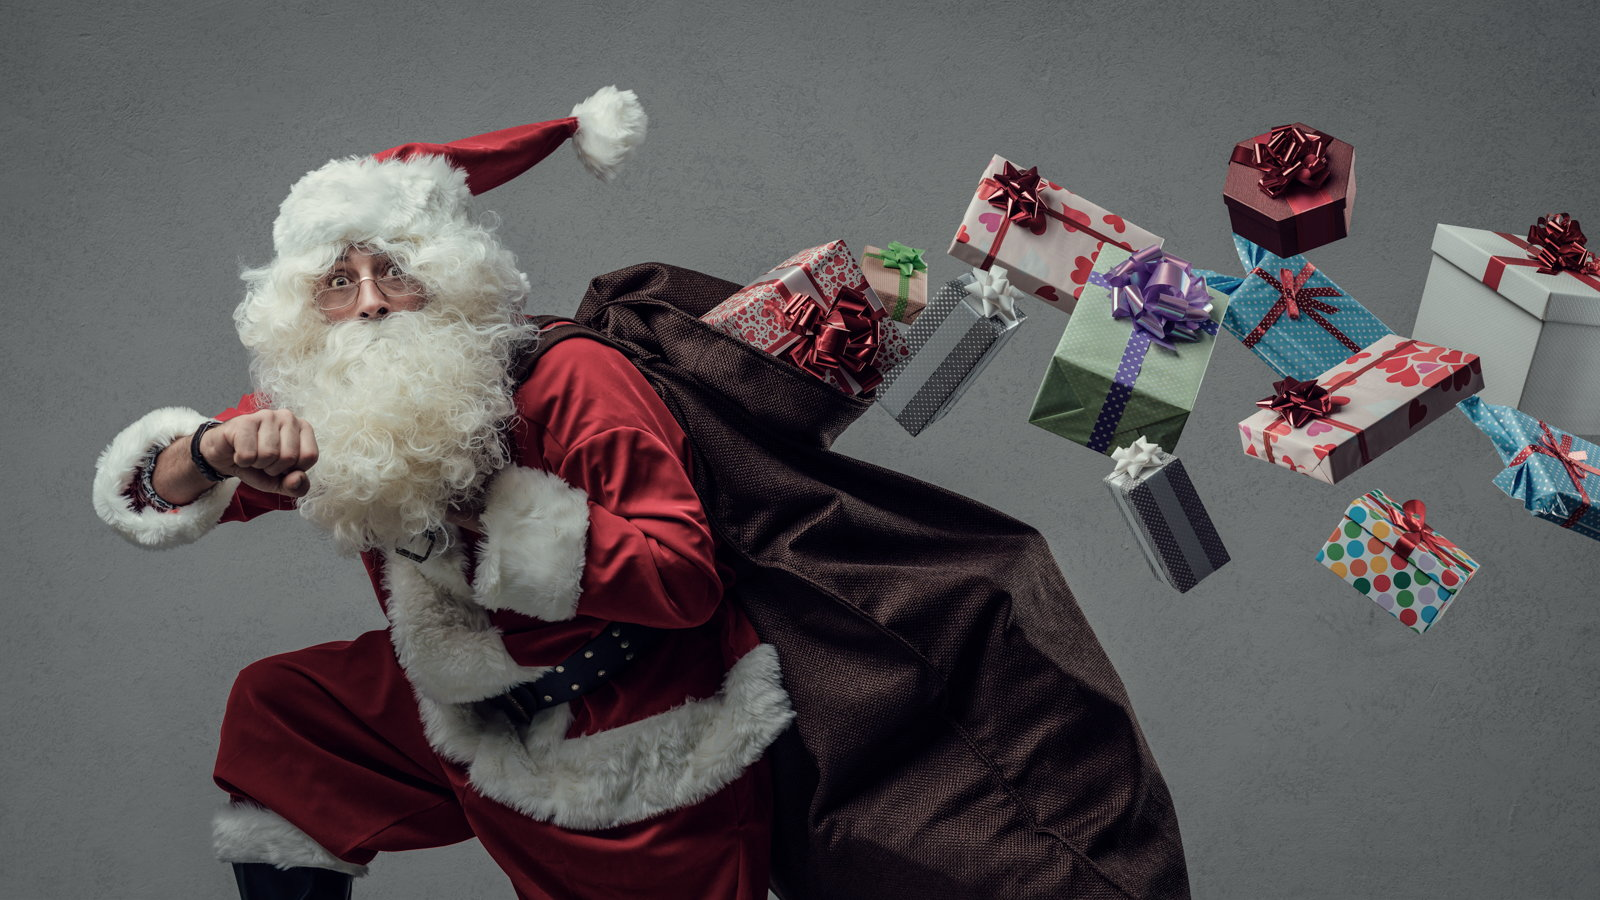 Santa Claus running with gifts flying out of bag